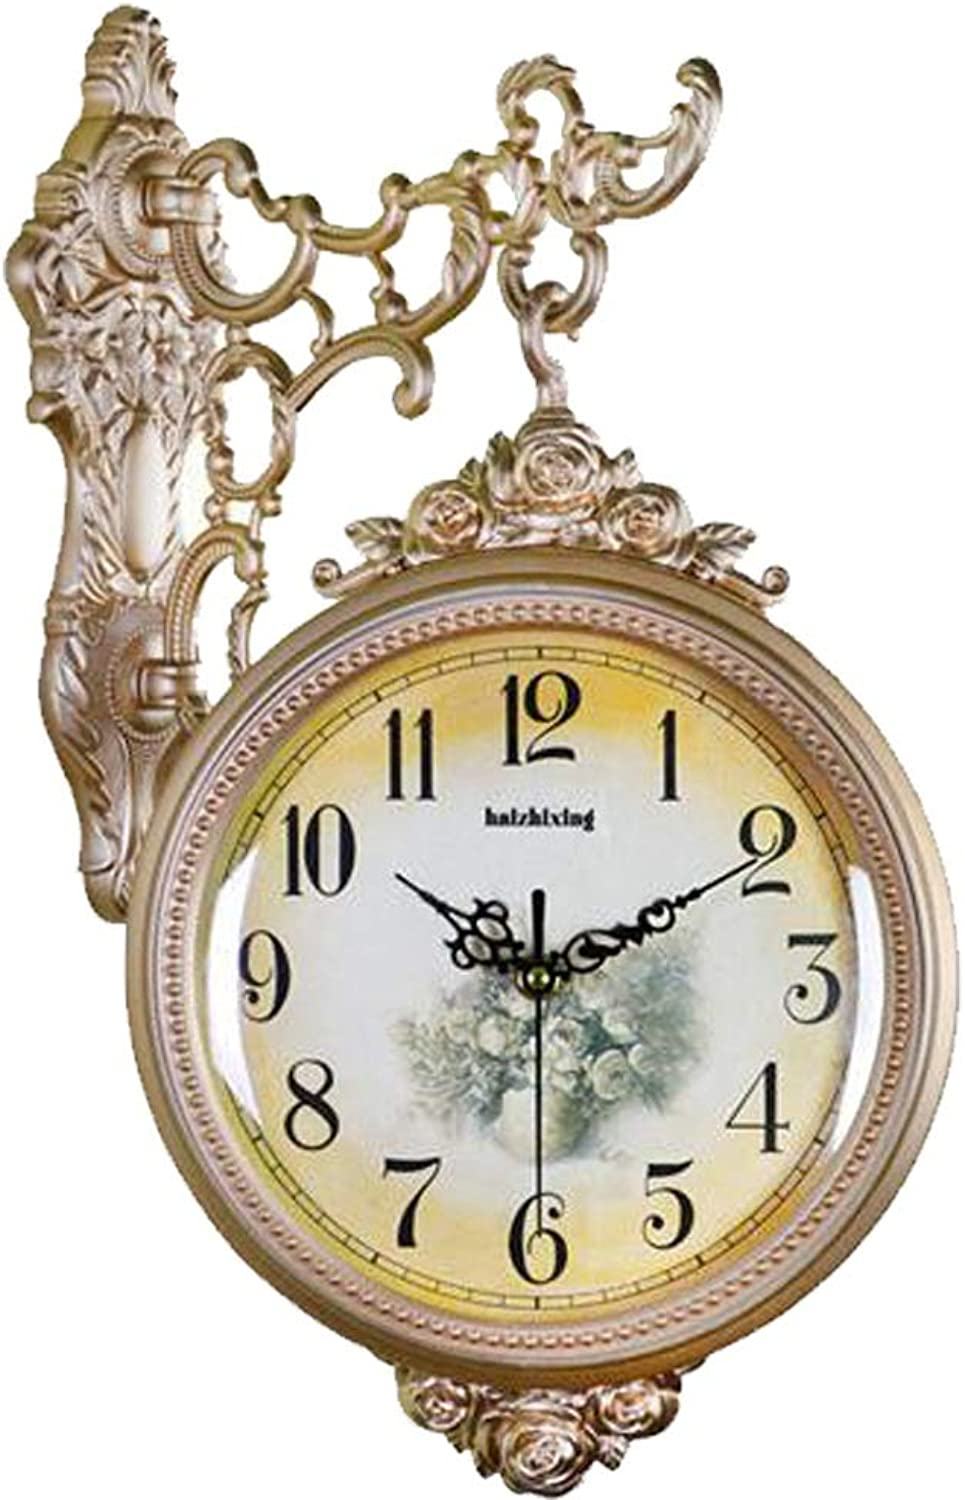 YONGMEI Wall Clock - Antique Double-Sided Living Room Wall Clock Large Mute Fashion Garden Simple Creative Modern Quartz Clock (color   gold, Size   45  31cm)